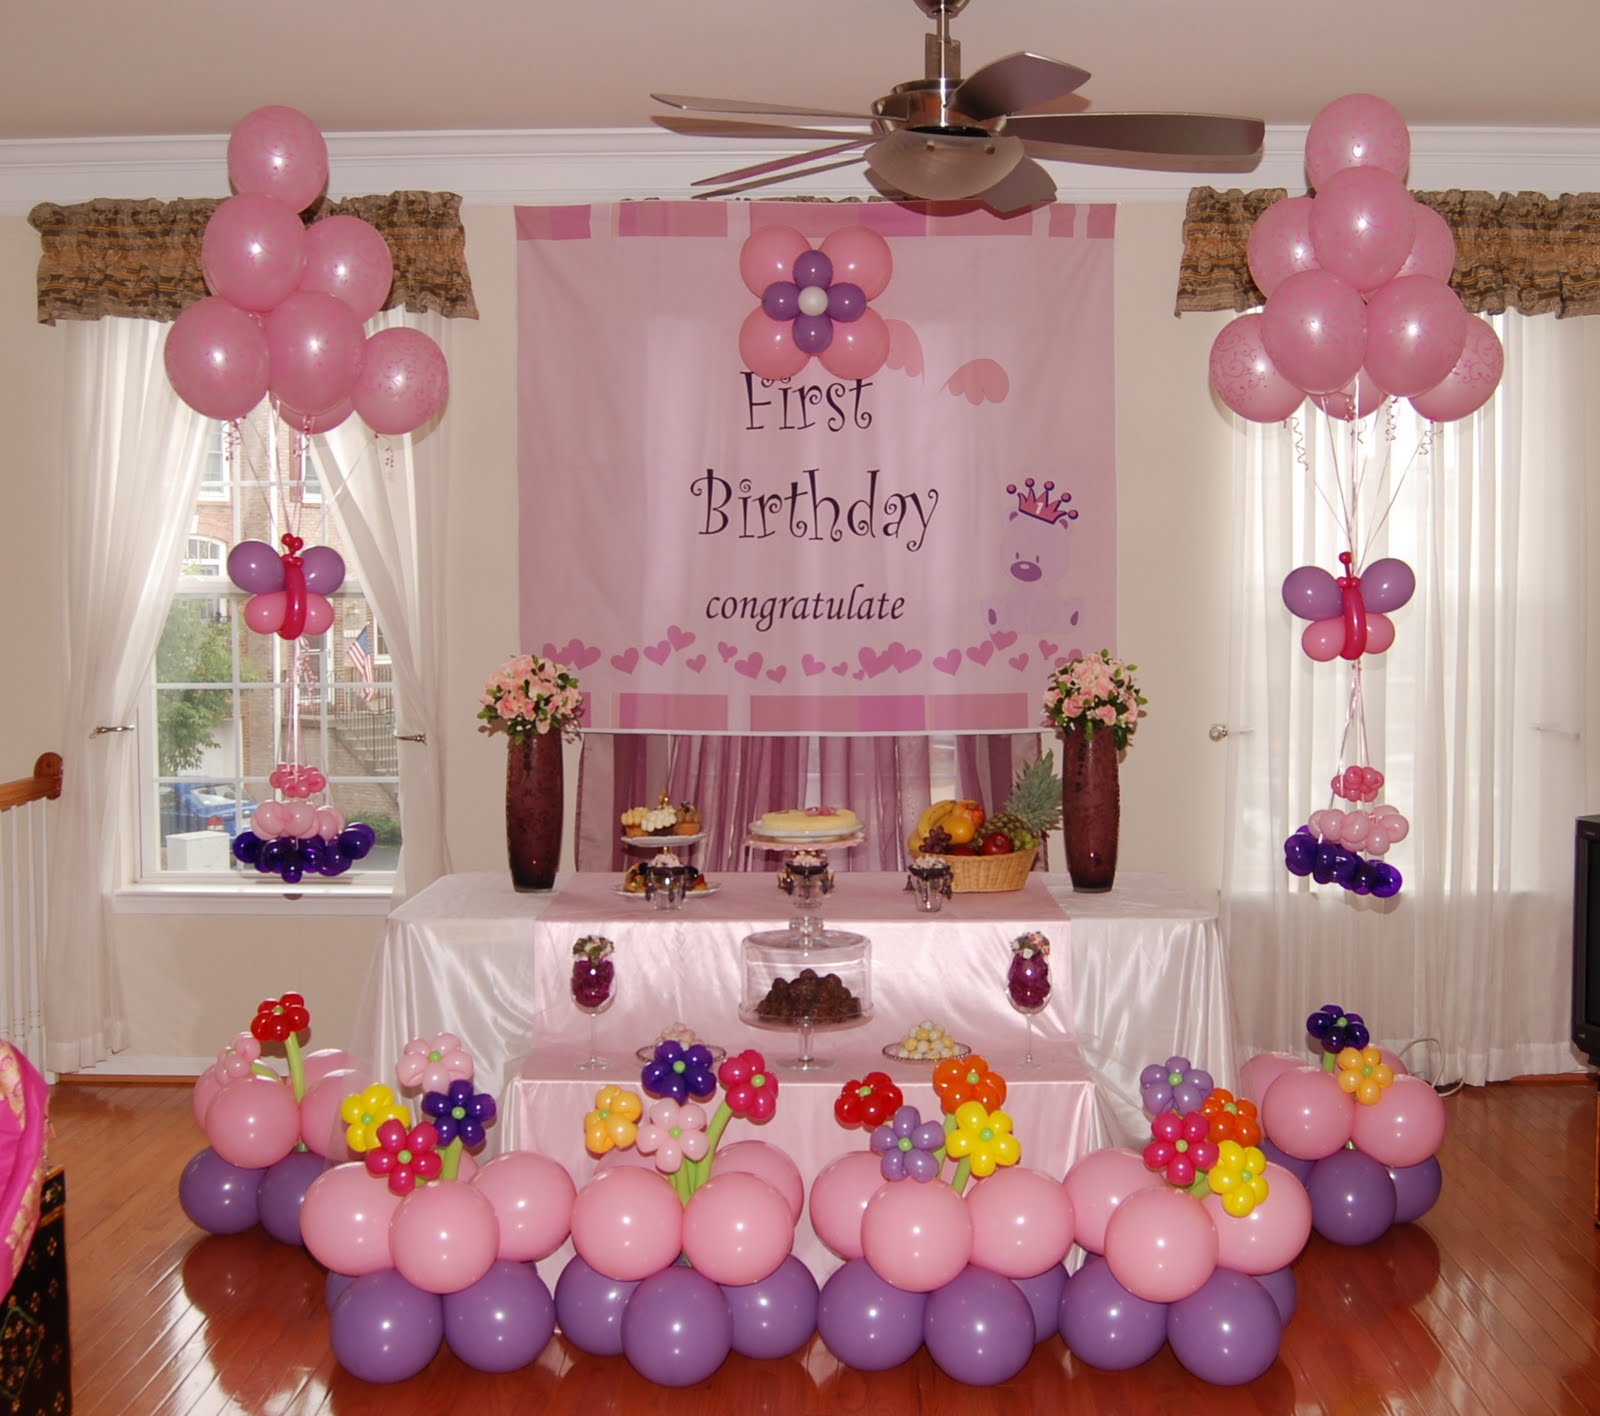 How to create a birthday party checklist great party ideas for 1st birthday decoration ideas at home